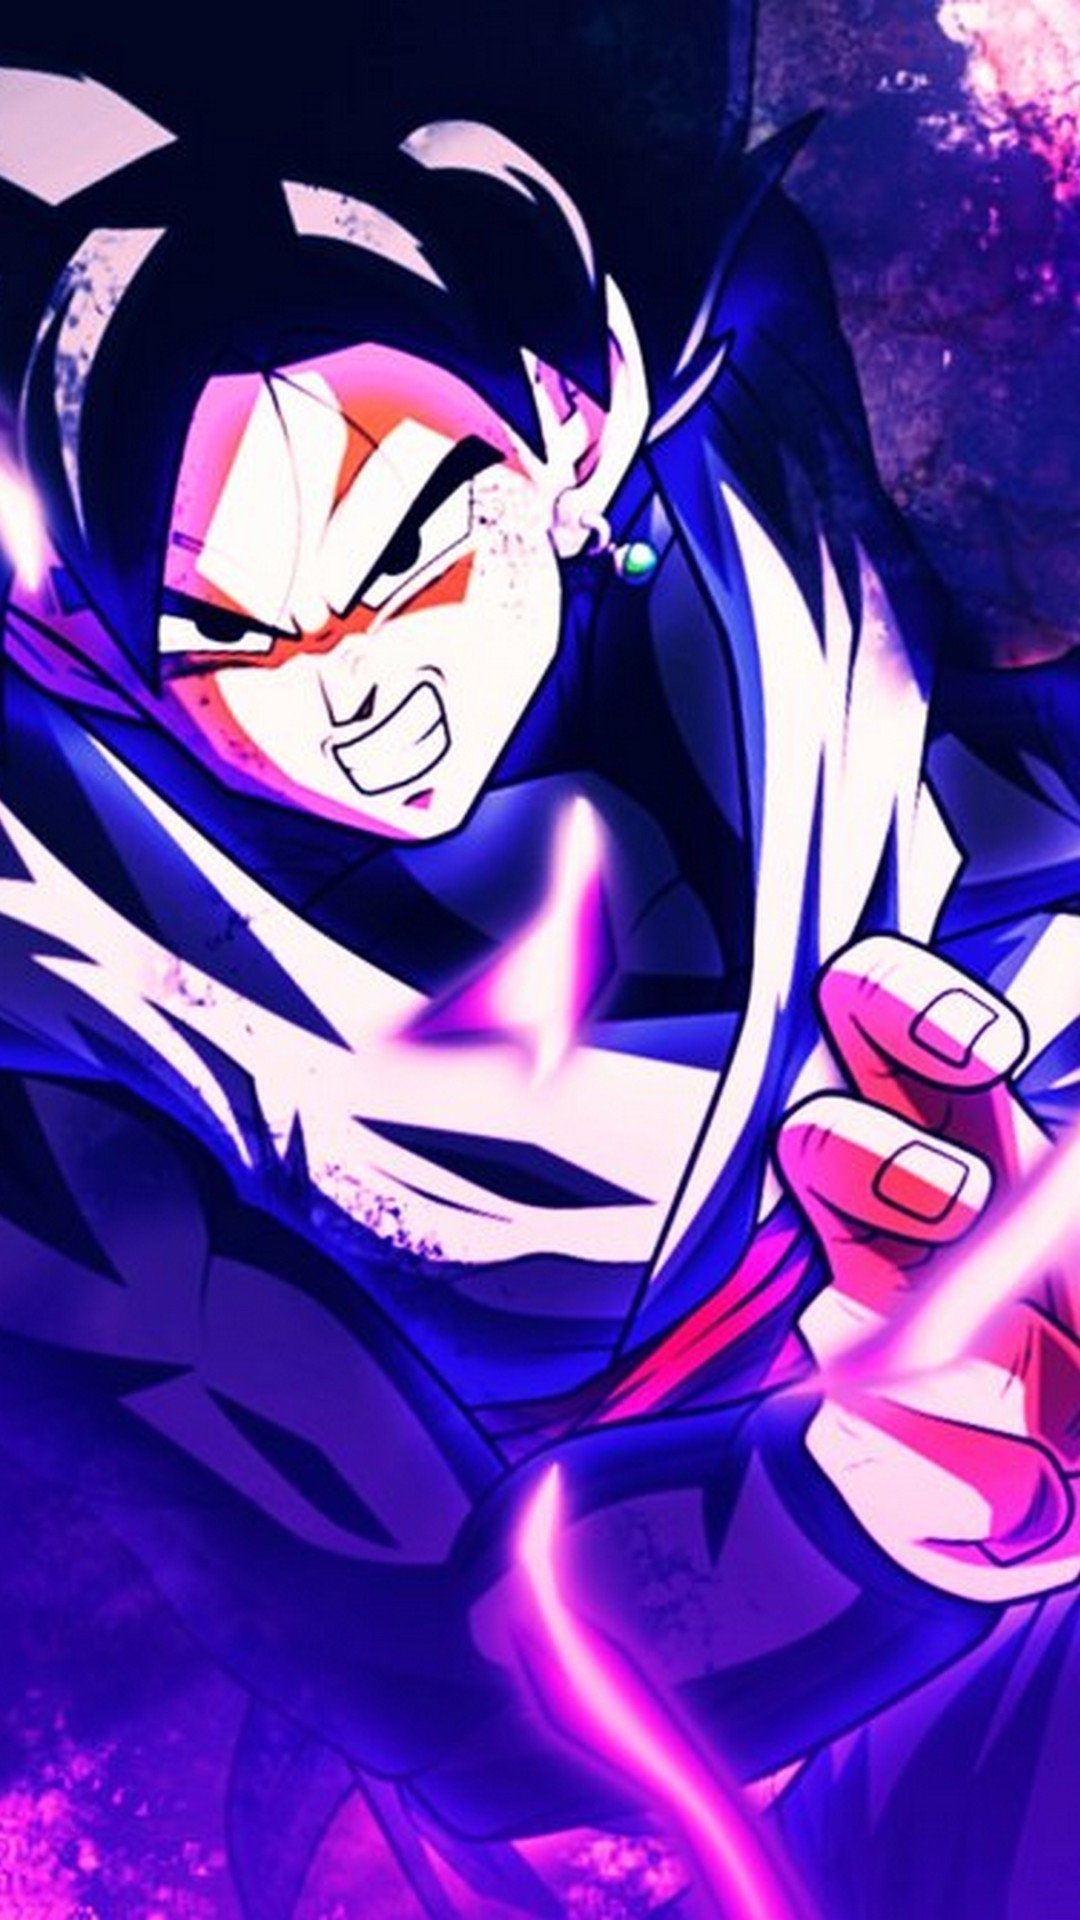 Res: 1080x1920, Wallpaper Black Goku iPhone with image resolution  pixel. You can  make this wallpaper for